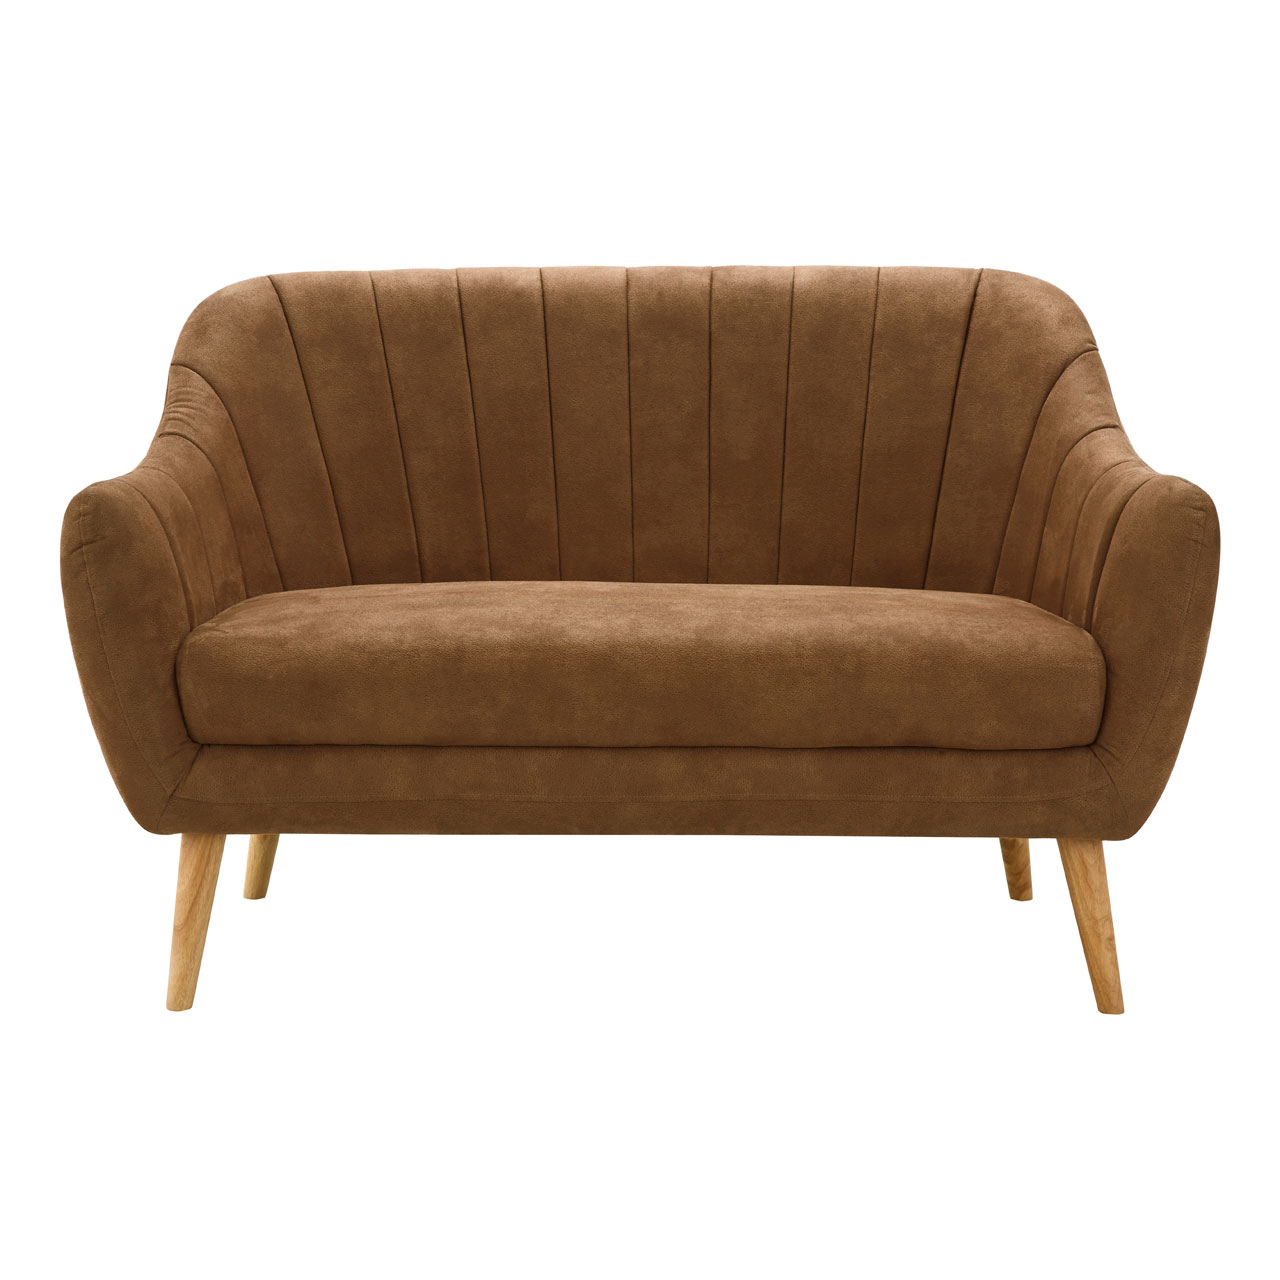 Zurich Sofa (2 Seater), Microfibre Rubberwood, Brown